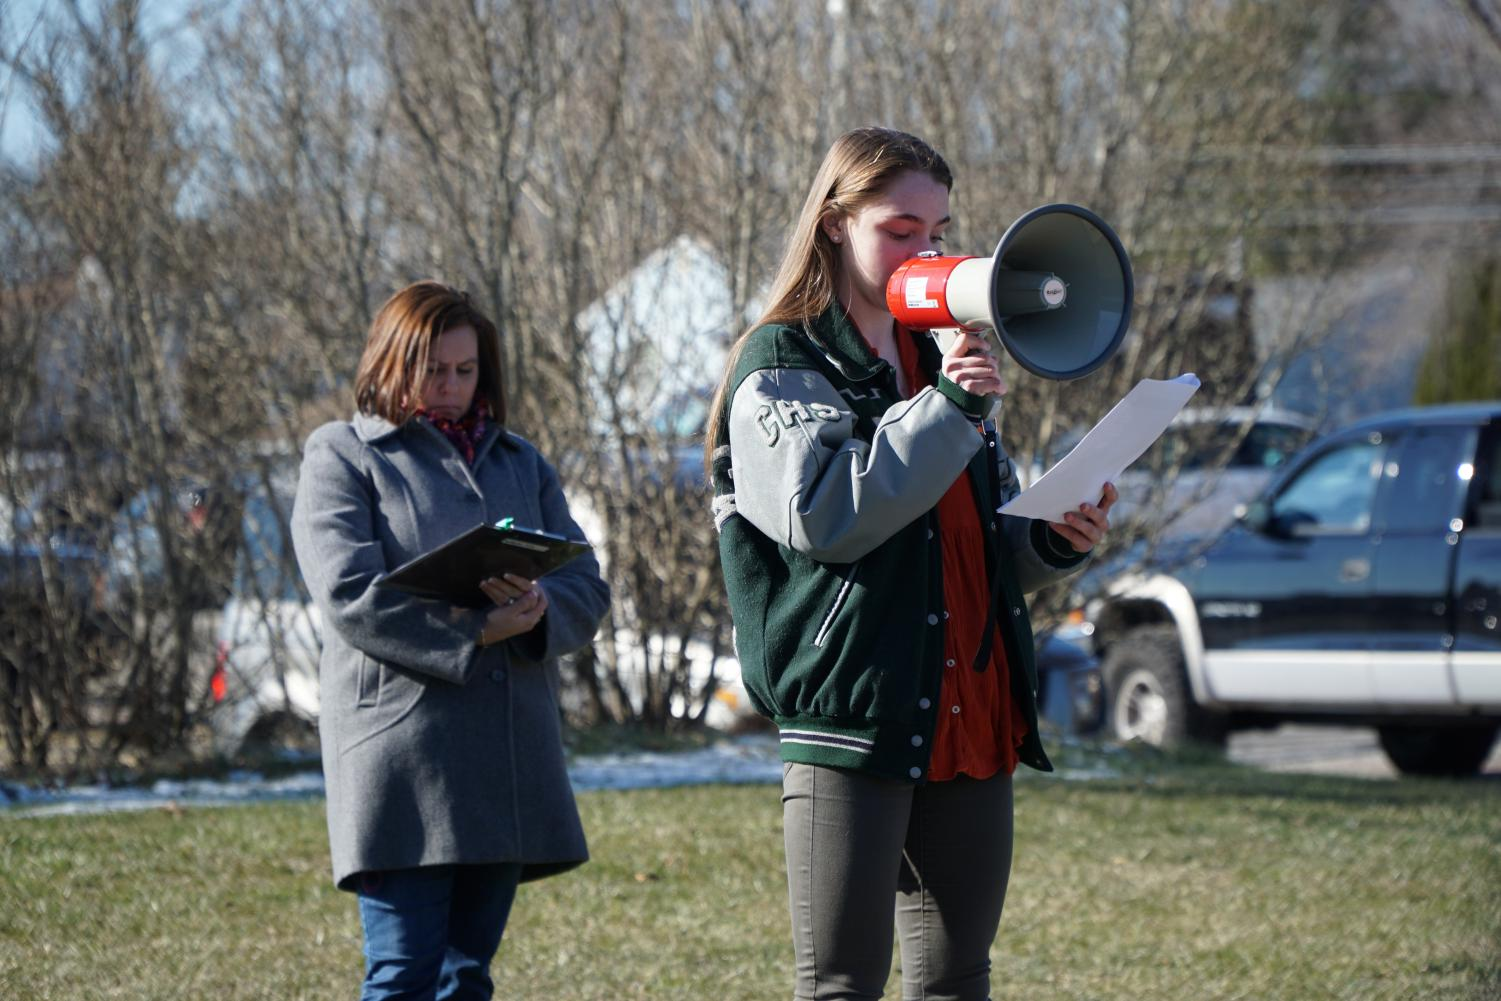 Senior Erica Sammarco of Colts Neck speaks at the 2018 Walkout in honor of those killed during the Parkland shooting.